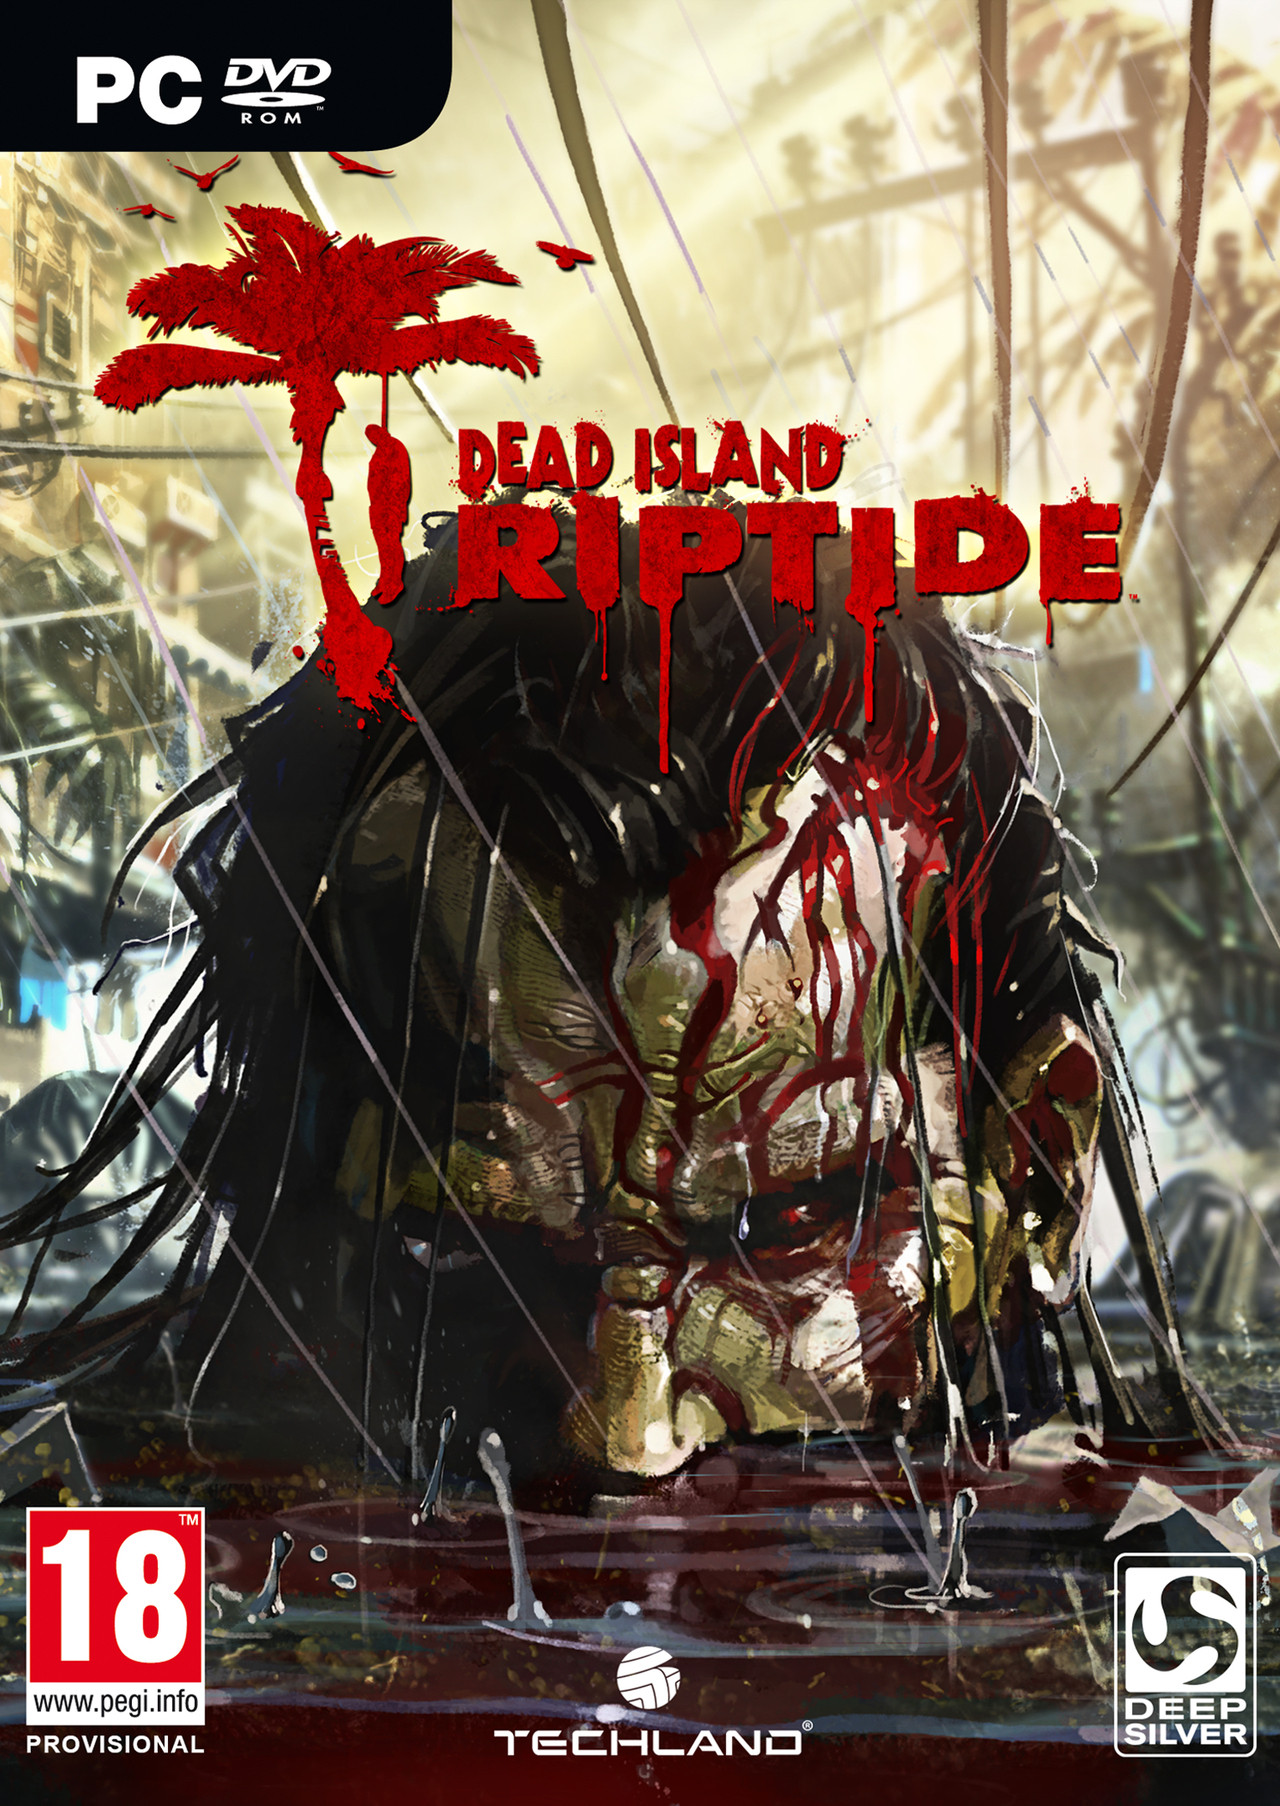 Dead Island Ps Store